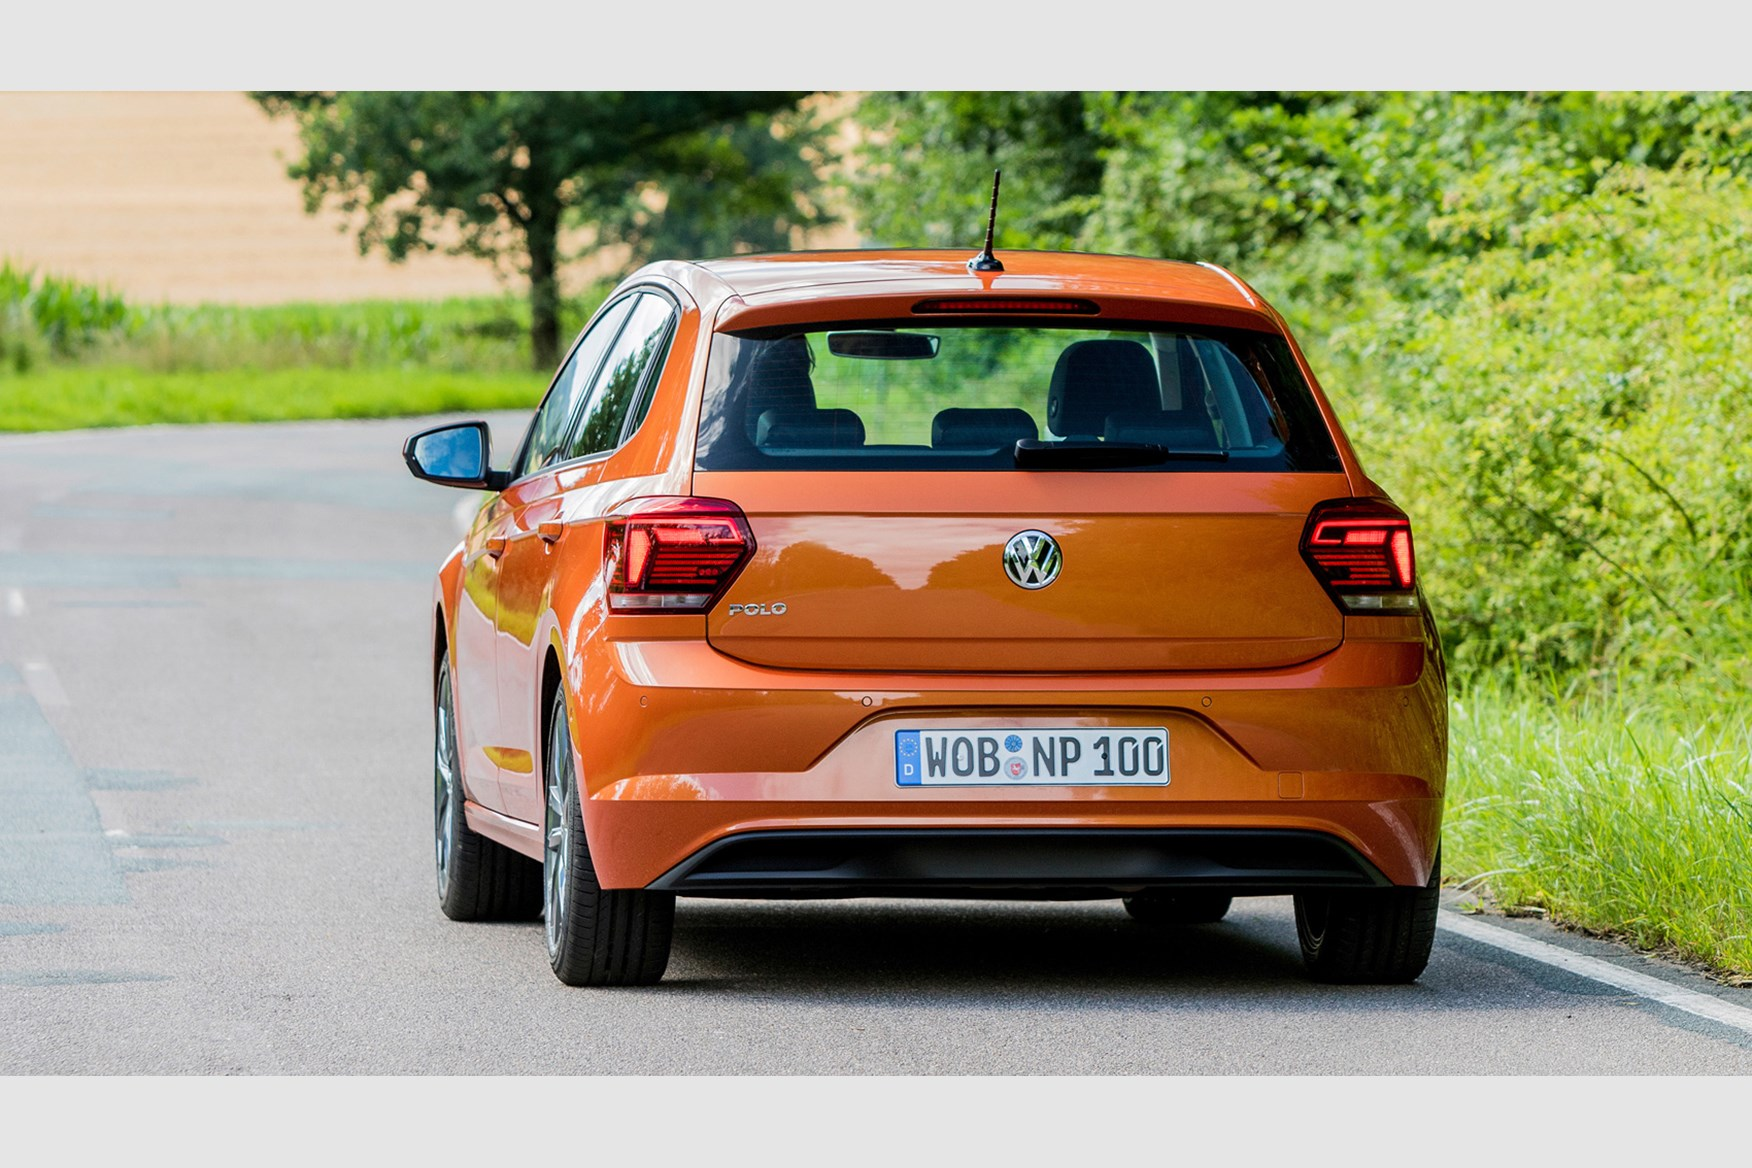 new vw polo  2018  review  diesel and petrol engines tested